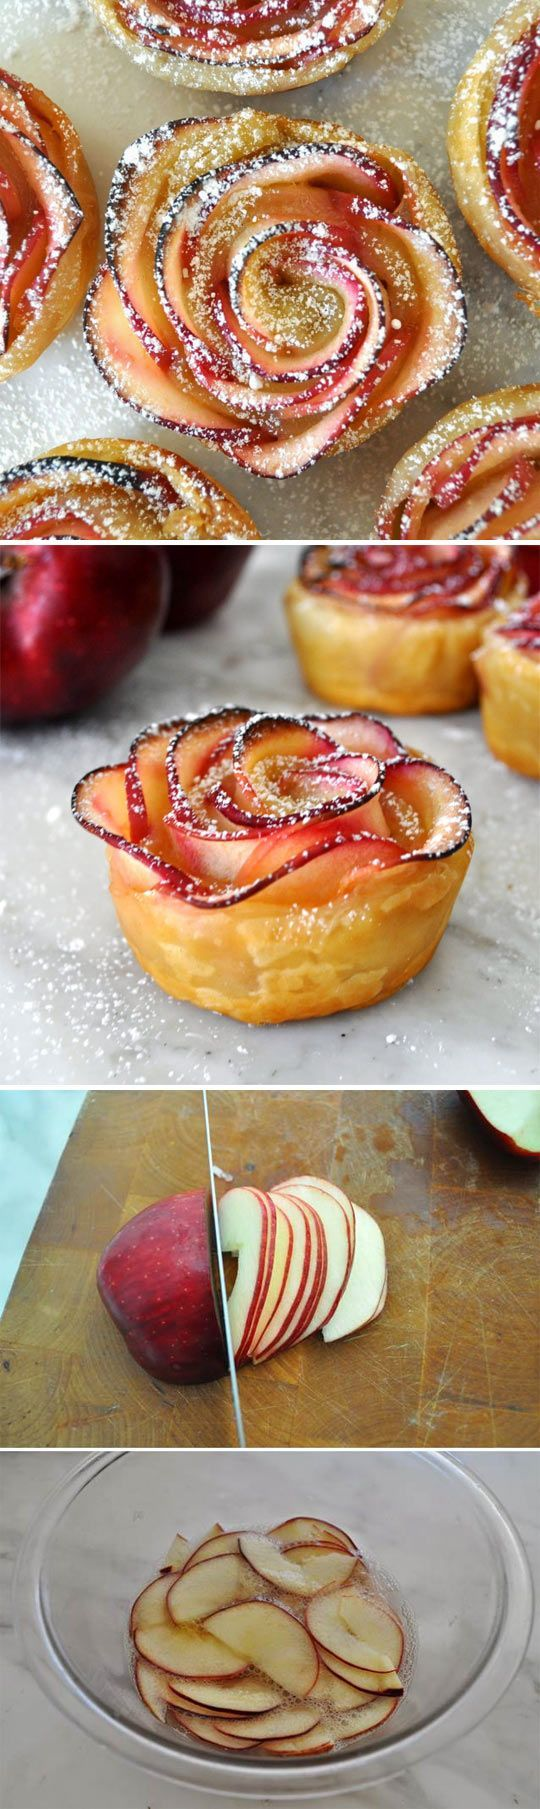 Apple Rose Dessert Pastry…